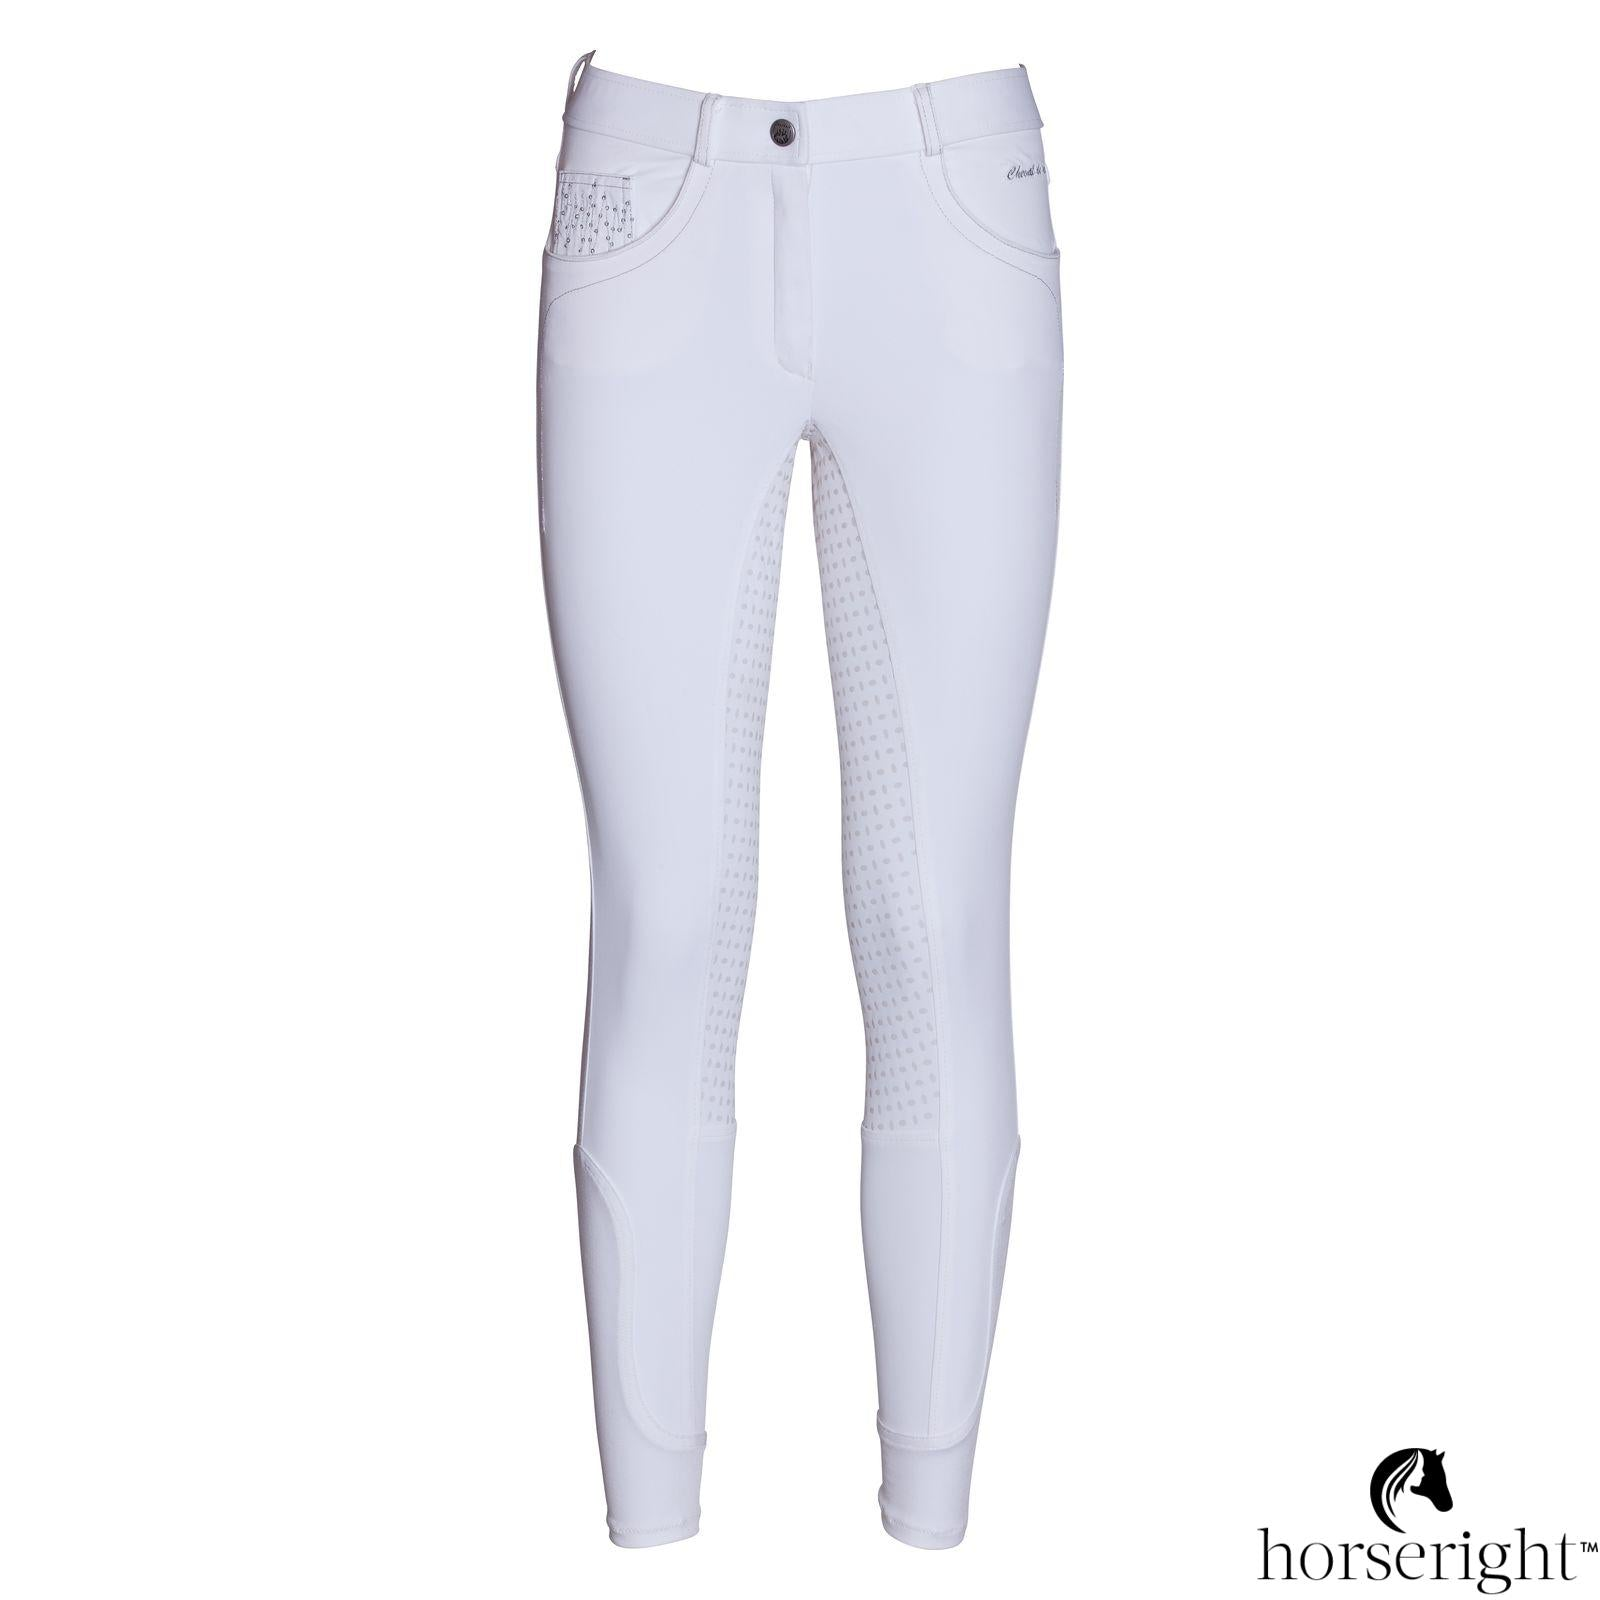 Clearance Cheval De Luxe Breeches Camille Grip